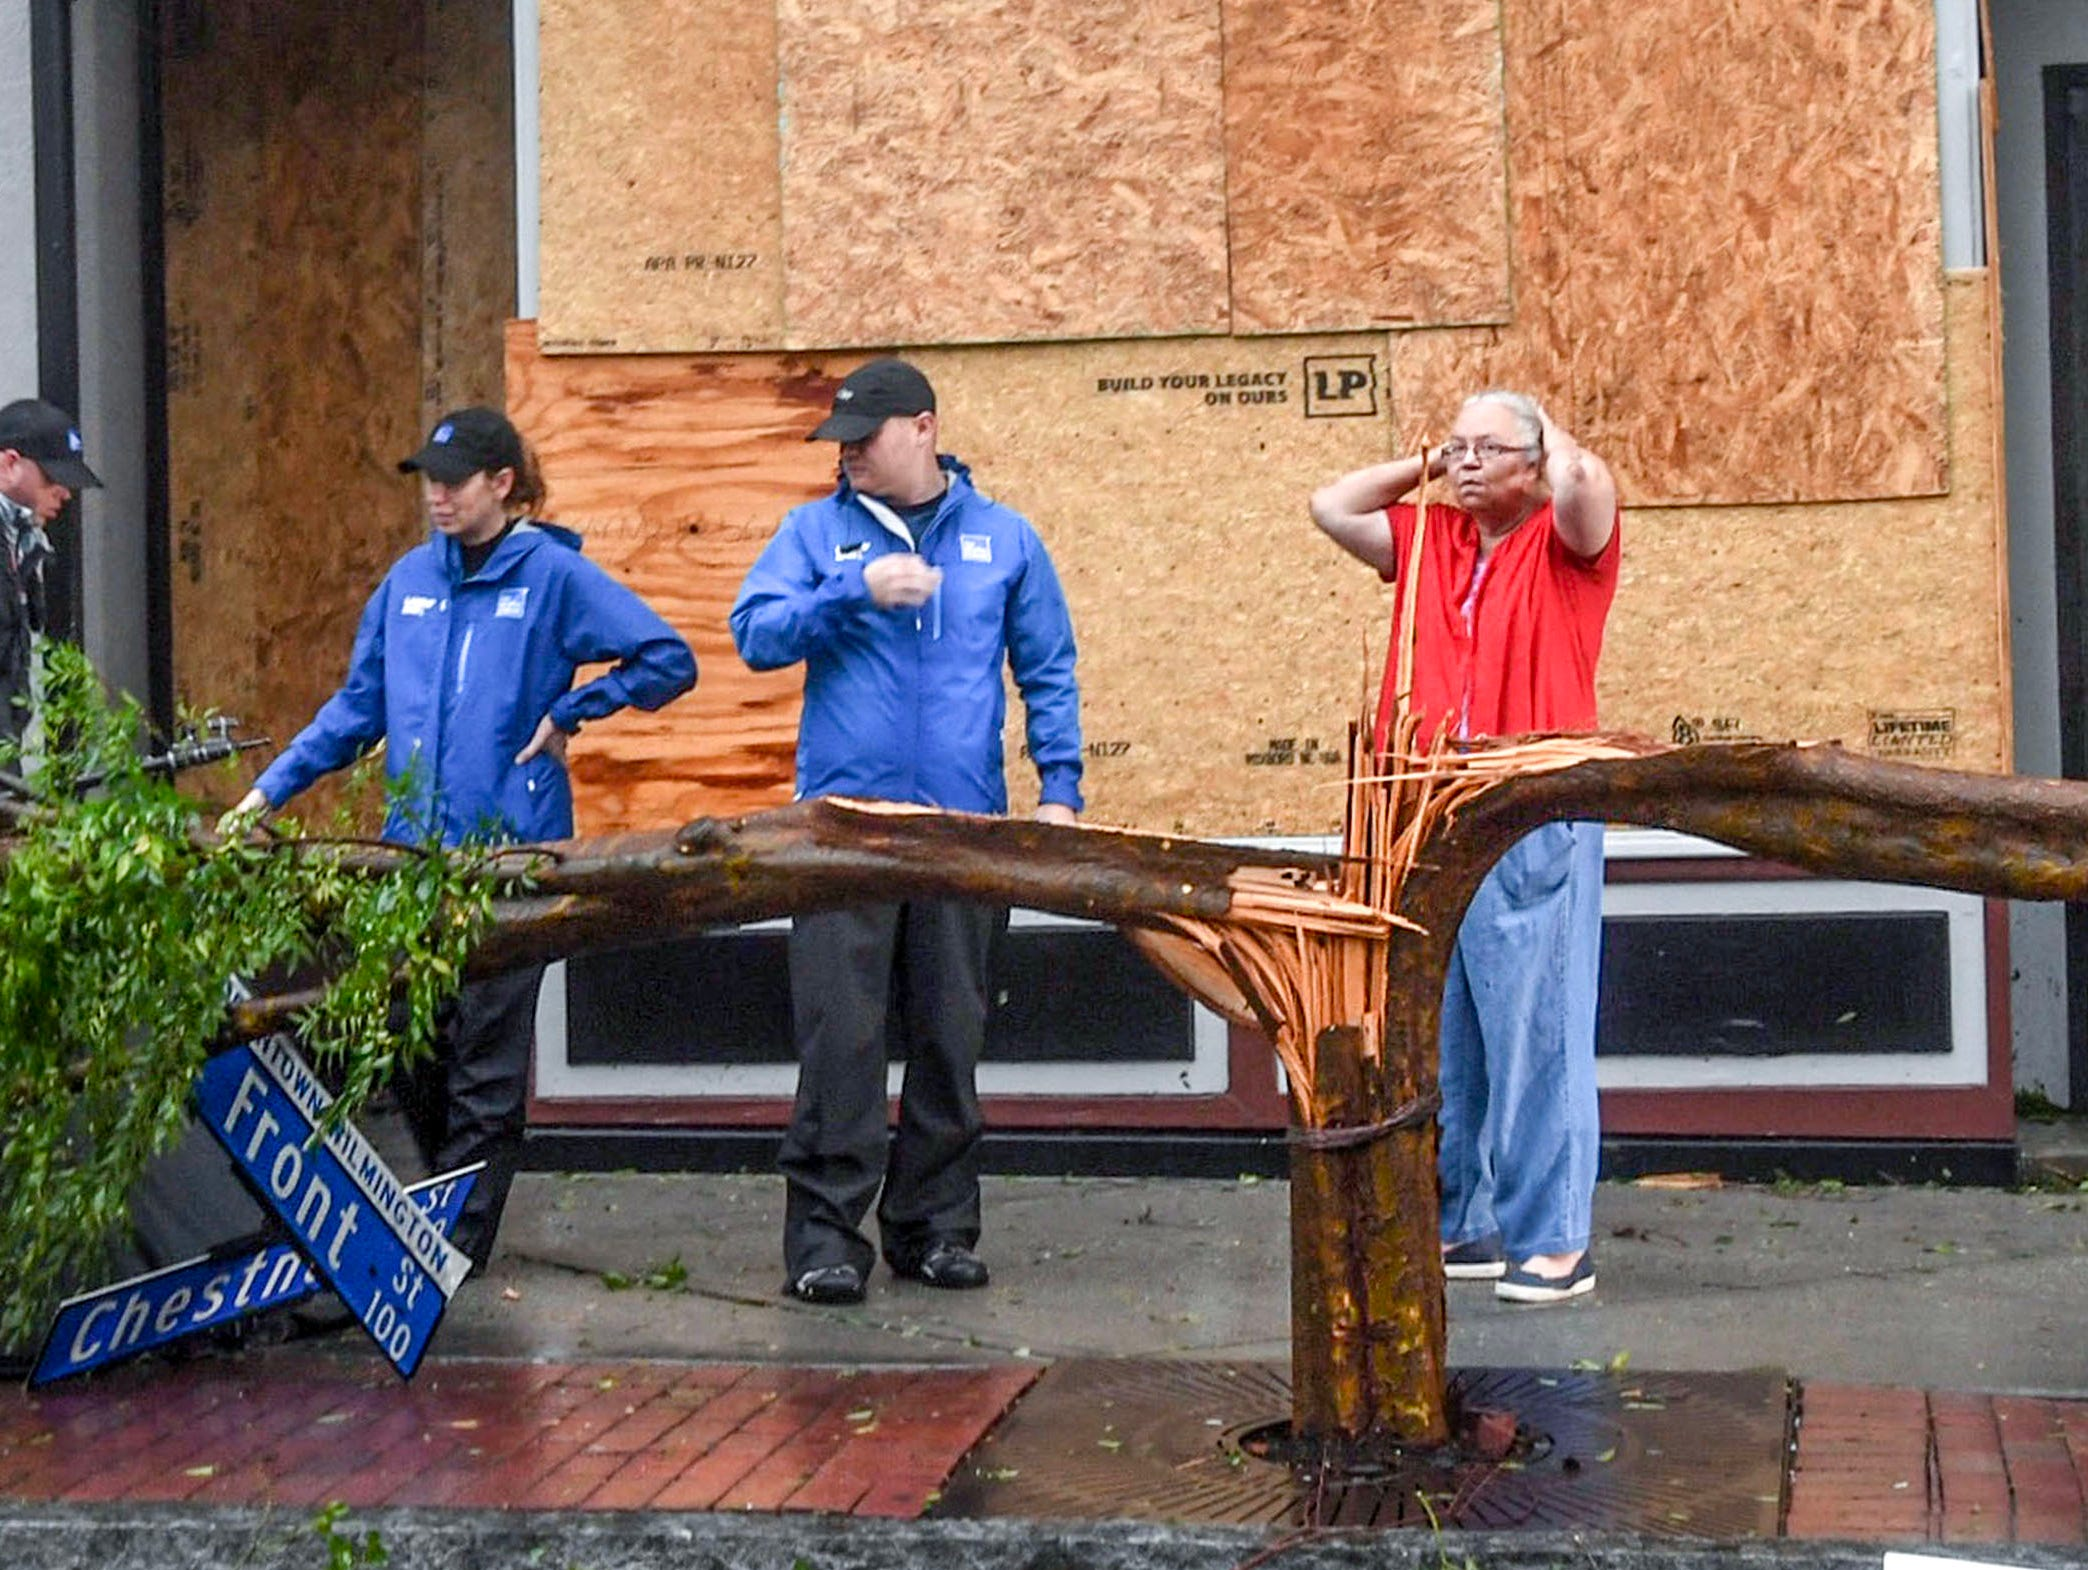 A business woman, right, stops to talk with The Weather Channel reporters on North Front Street in downtown Wilmington, North Carolina, as Hurricane Florence just hit land on Friday, September 14, 2018.